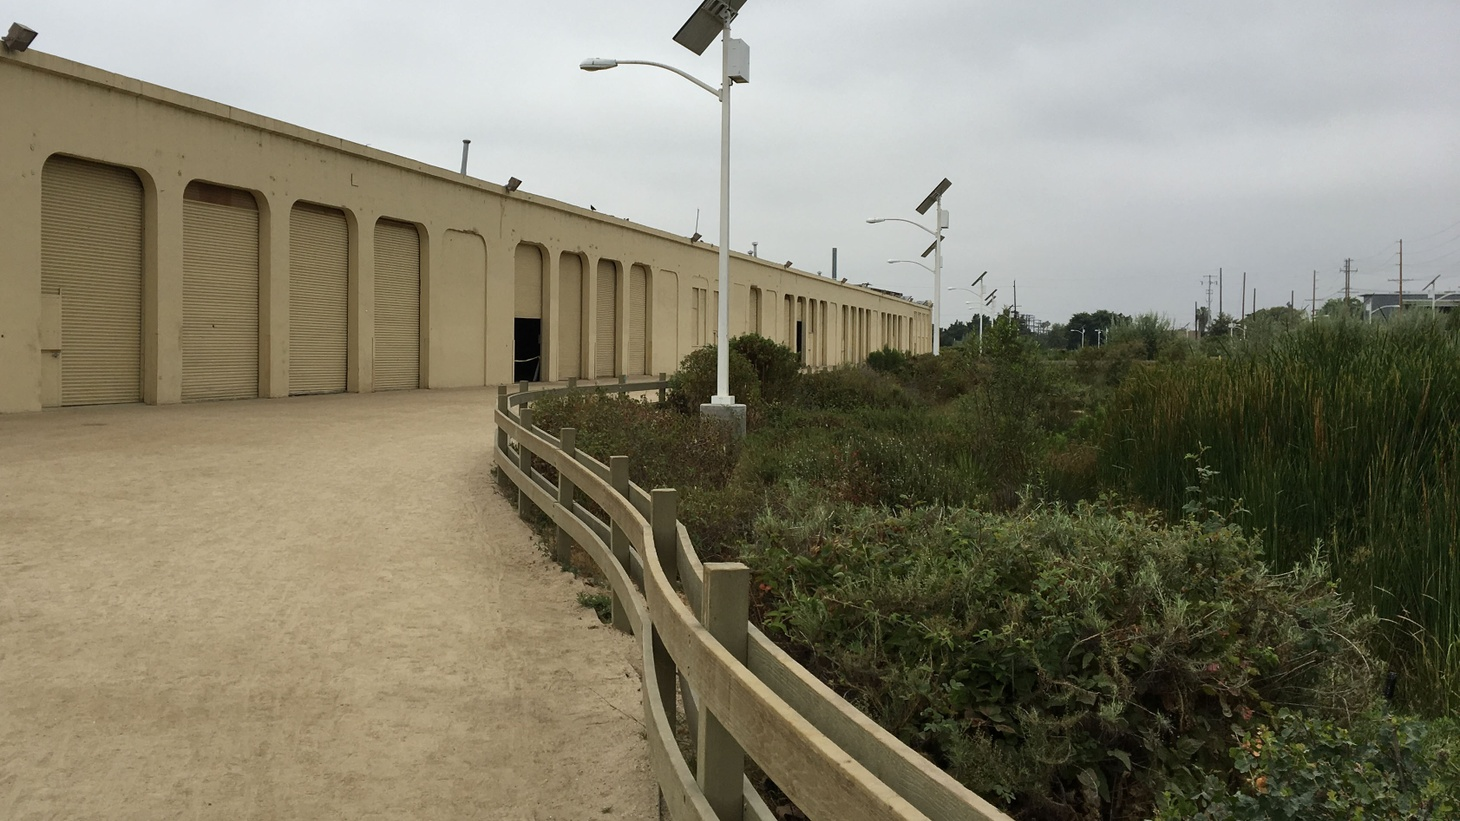 LACMA wants to turn a defunct MTA facility in South LA into a new space for exhibitions, educational programming and art storage. What would this mean for the neighboring community, and for LACMA's other major project: to renovate its main campus on Wilshire Boulevard?